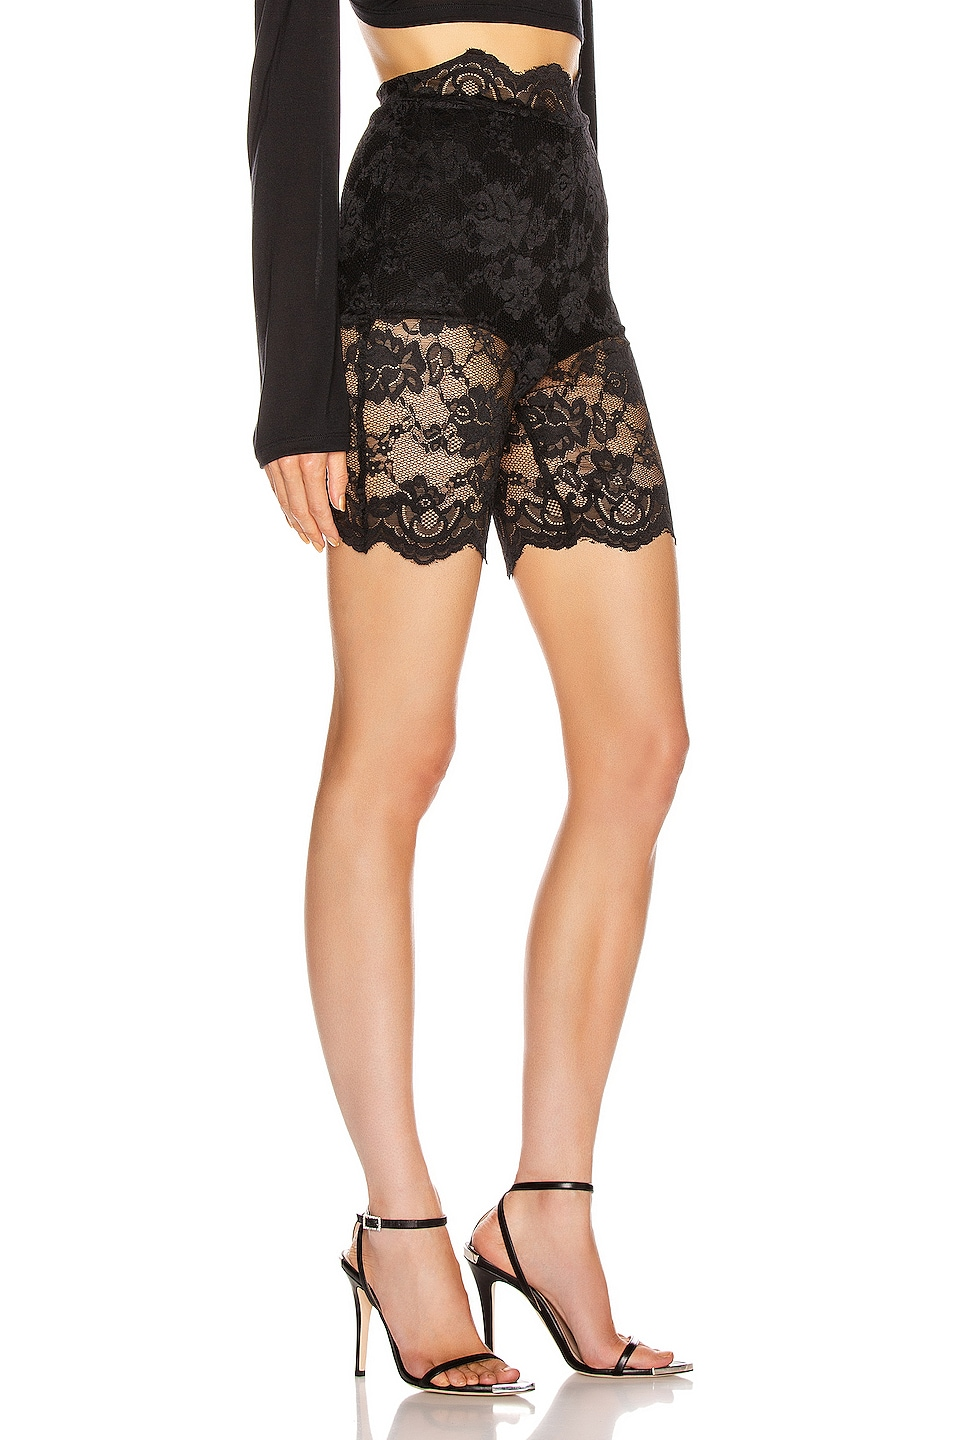 Image 2 of Atoir Only One Shorts in Black Lace